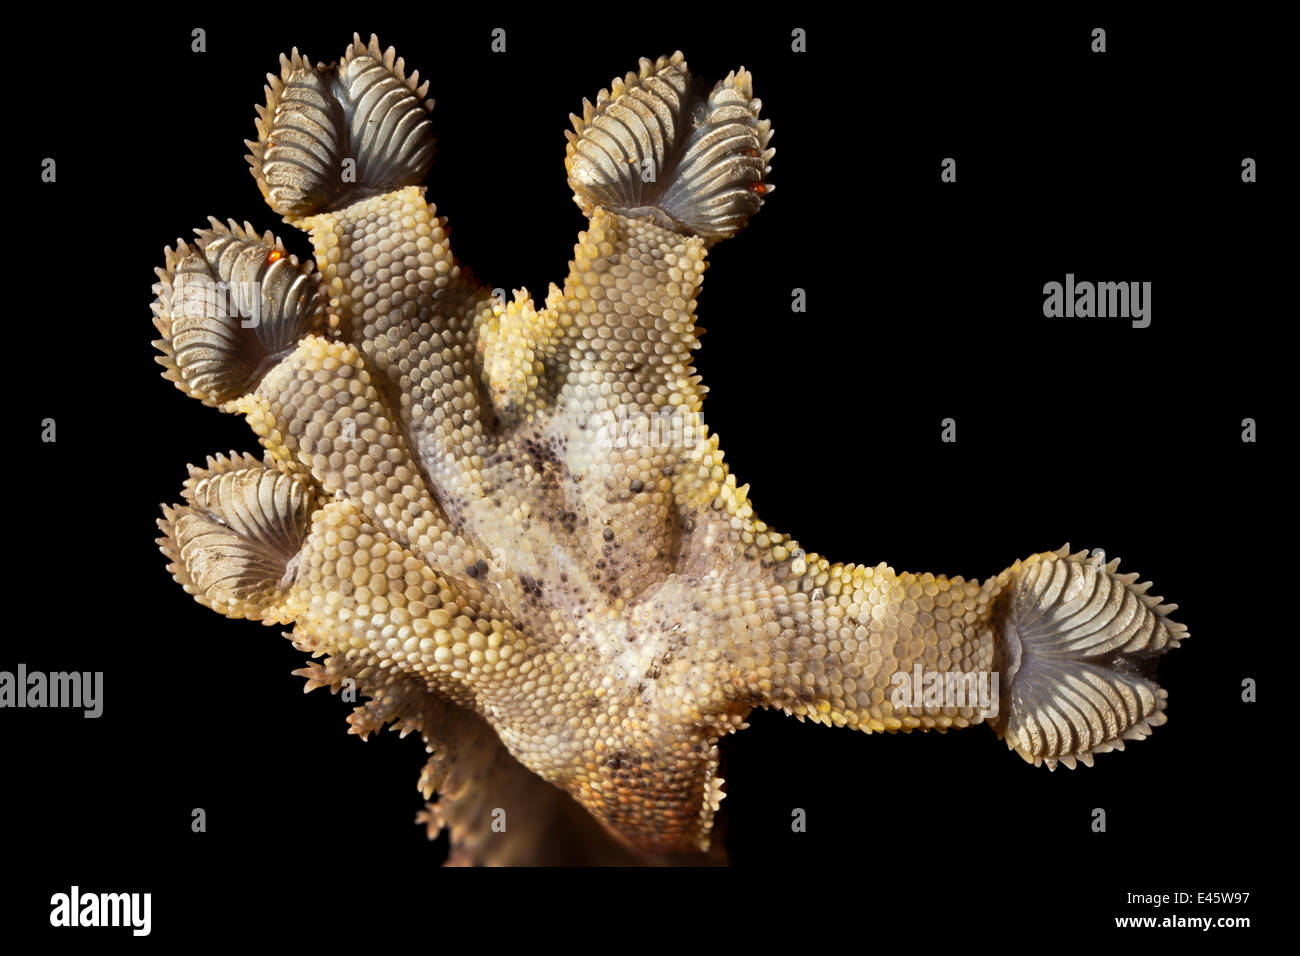 Close-up of the underside of foot of Leaf-tailed gecko {Uroplatus sikorae} as it walks on vertical glass. The finely - Stock Image